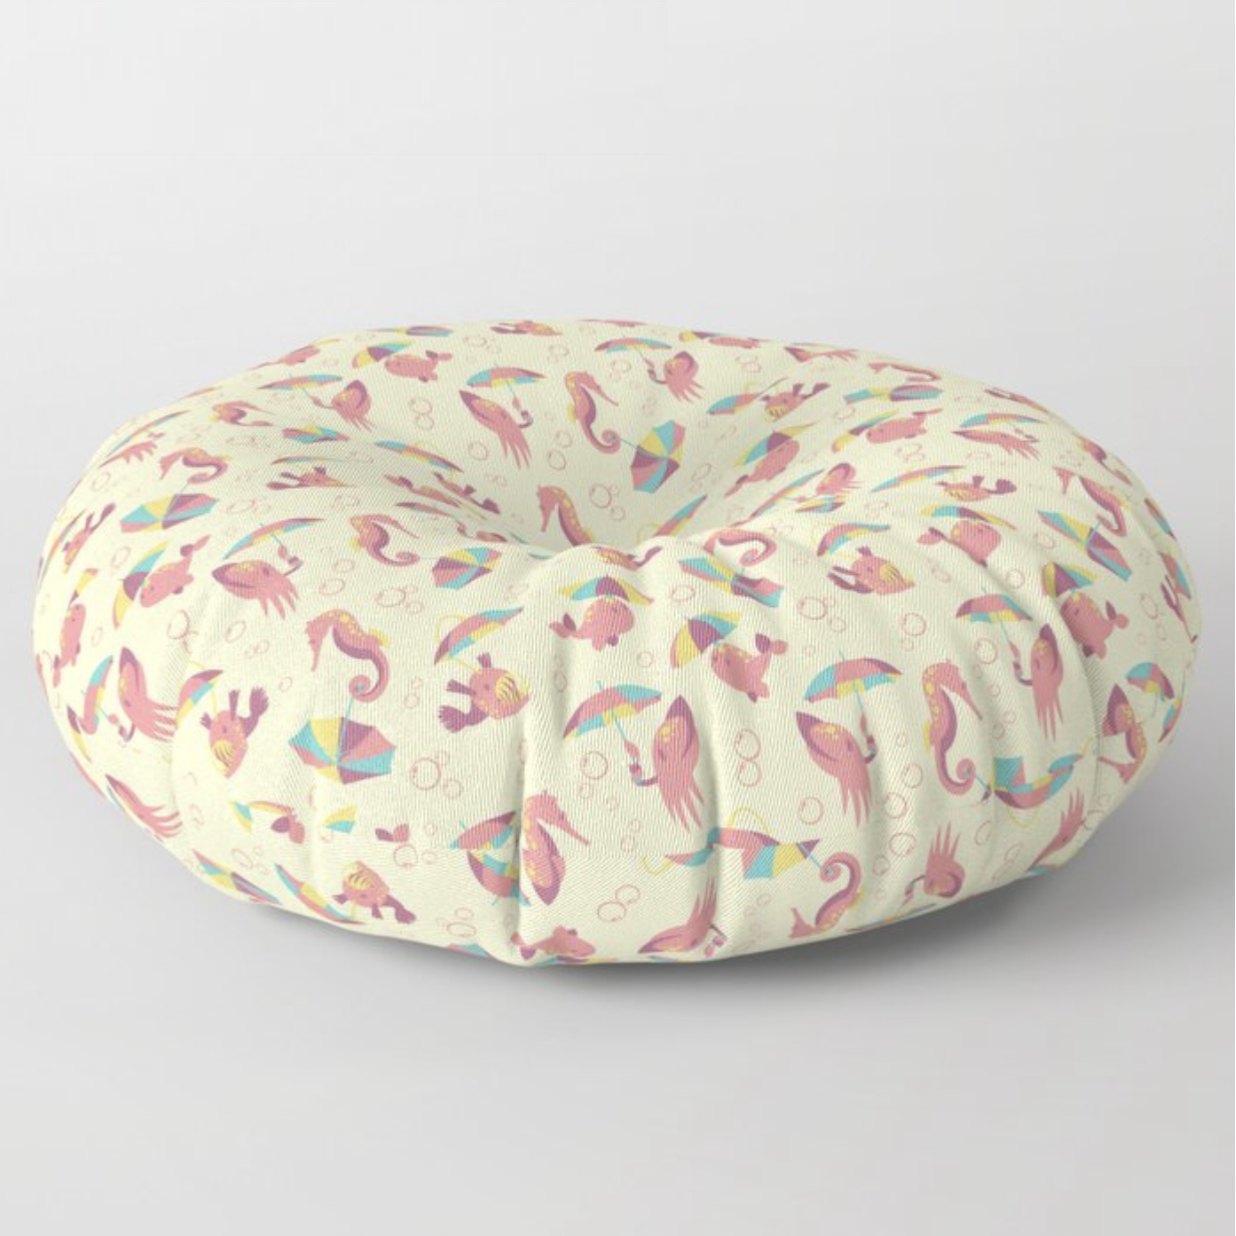 A Chance of Rain Floor Pillow from Society6